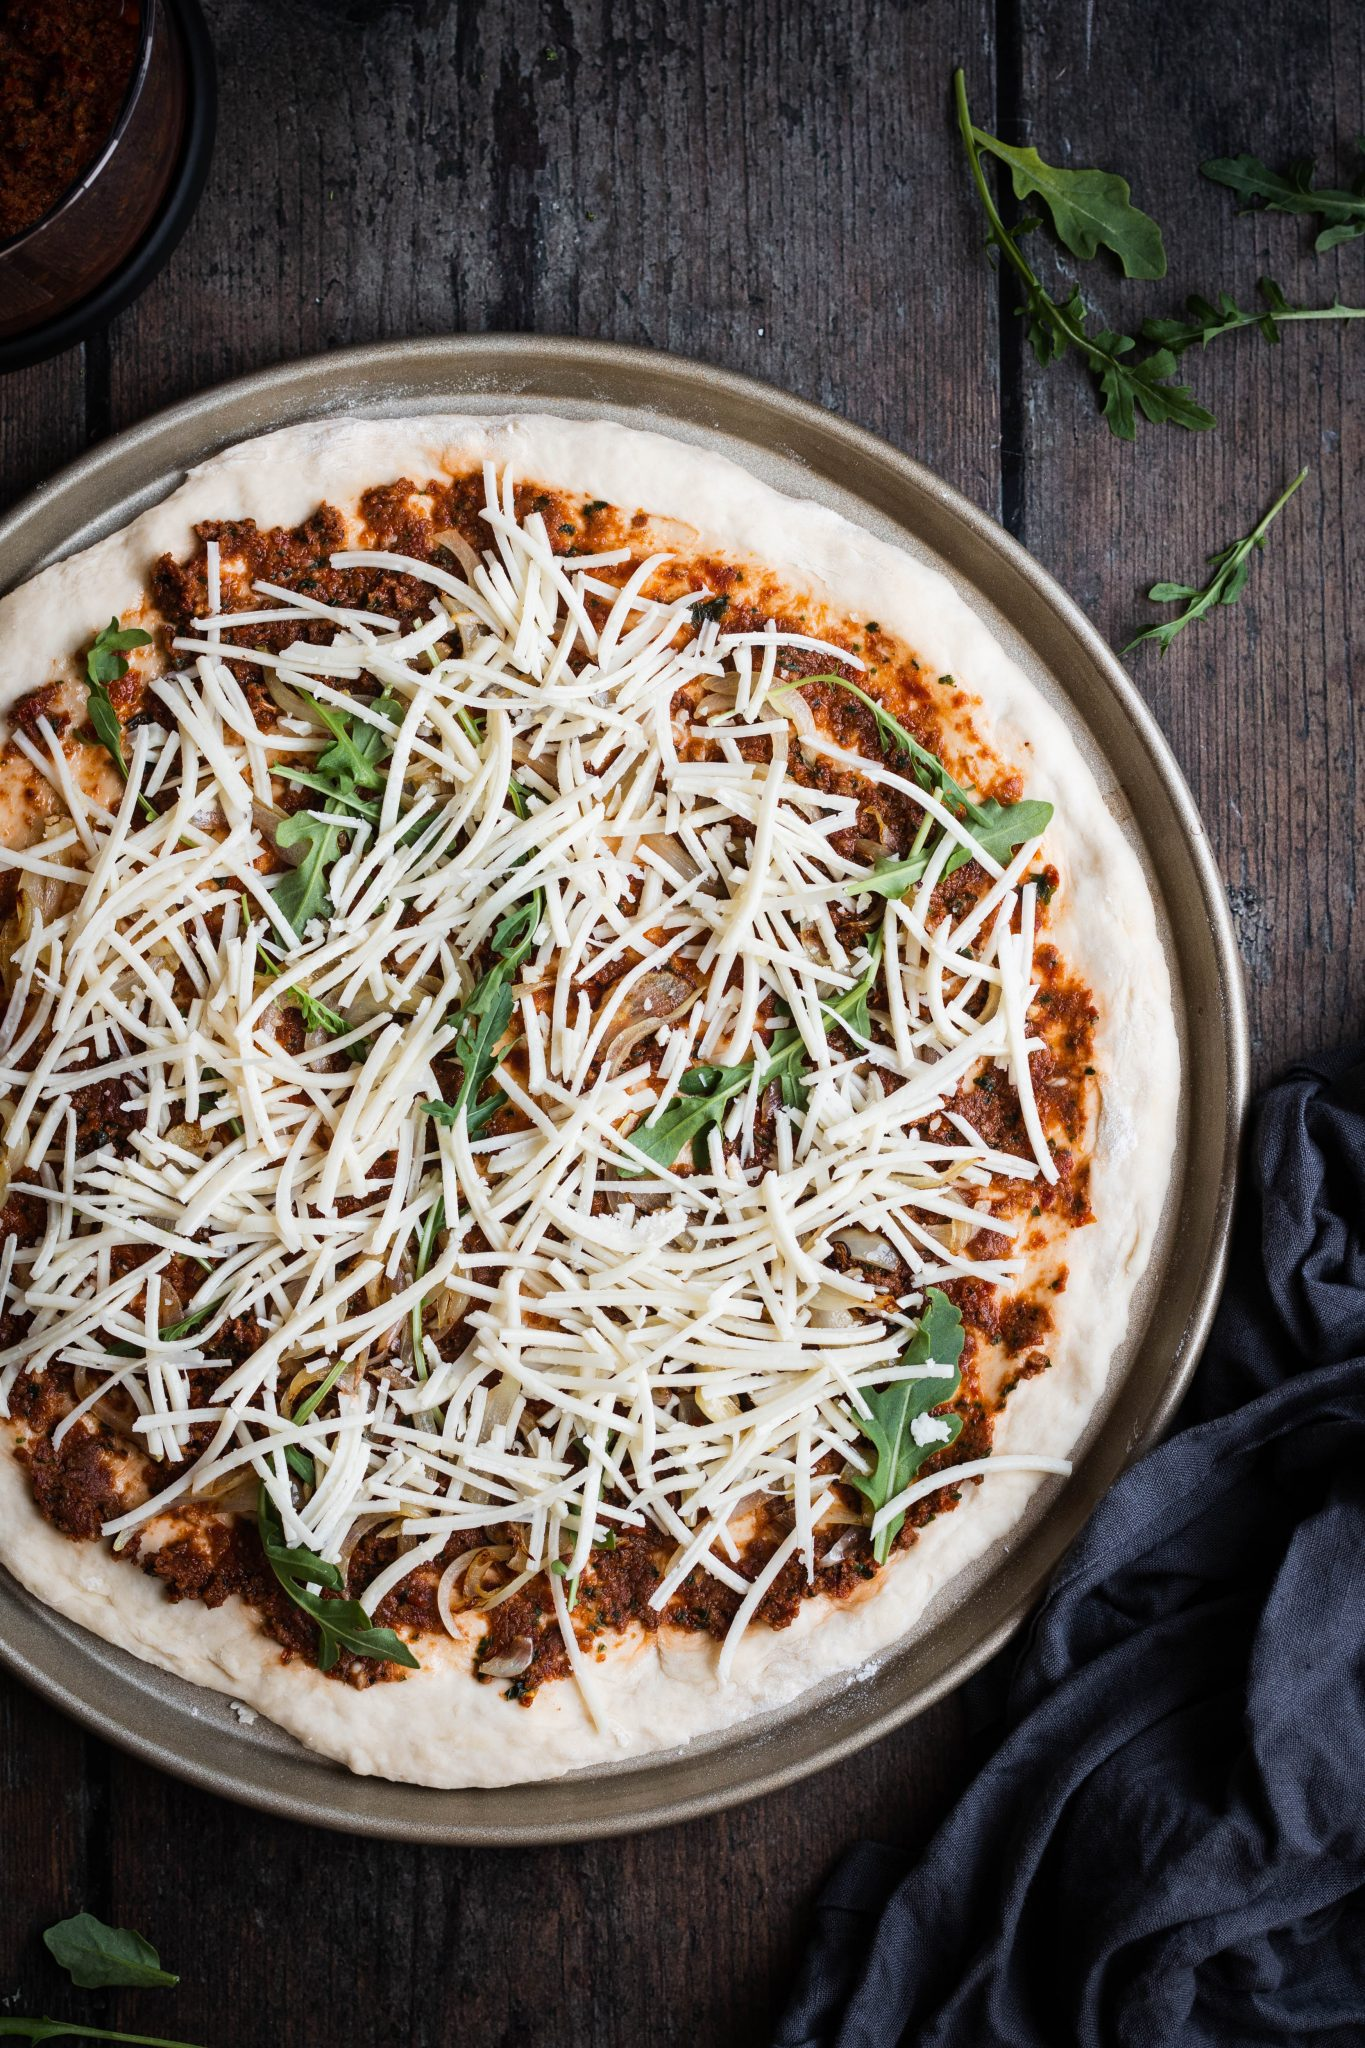 unbaked pizza with vegetables and vegan cheese